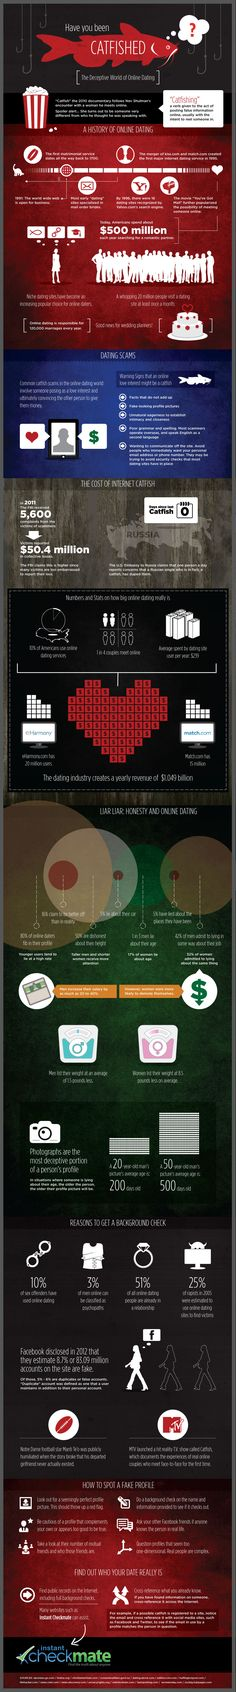 Have You Been Catfished? #infographic #online dating